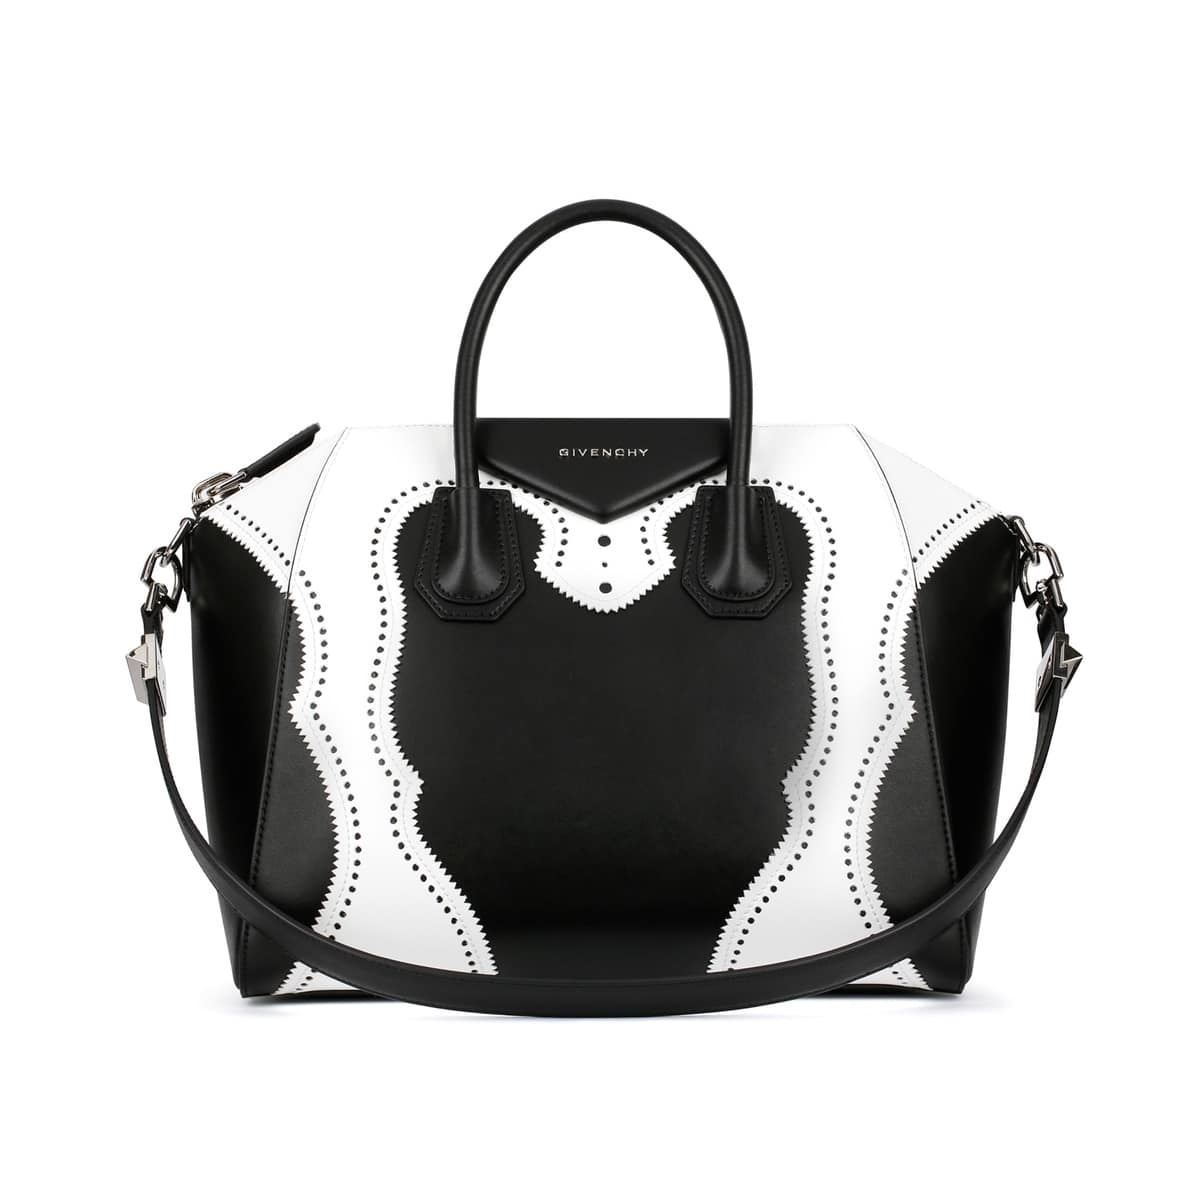 Givenchy Black White Brogue Antigona Medium Bag 6e0622fe2e6c4